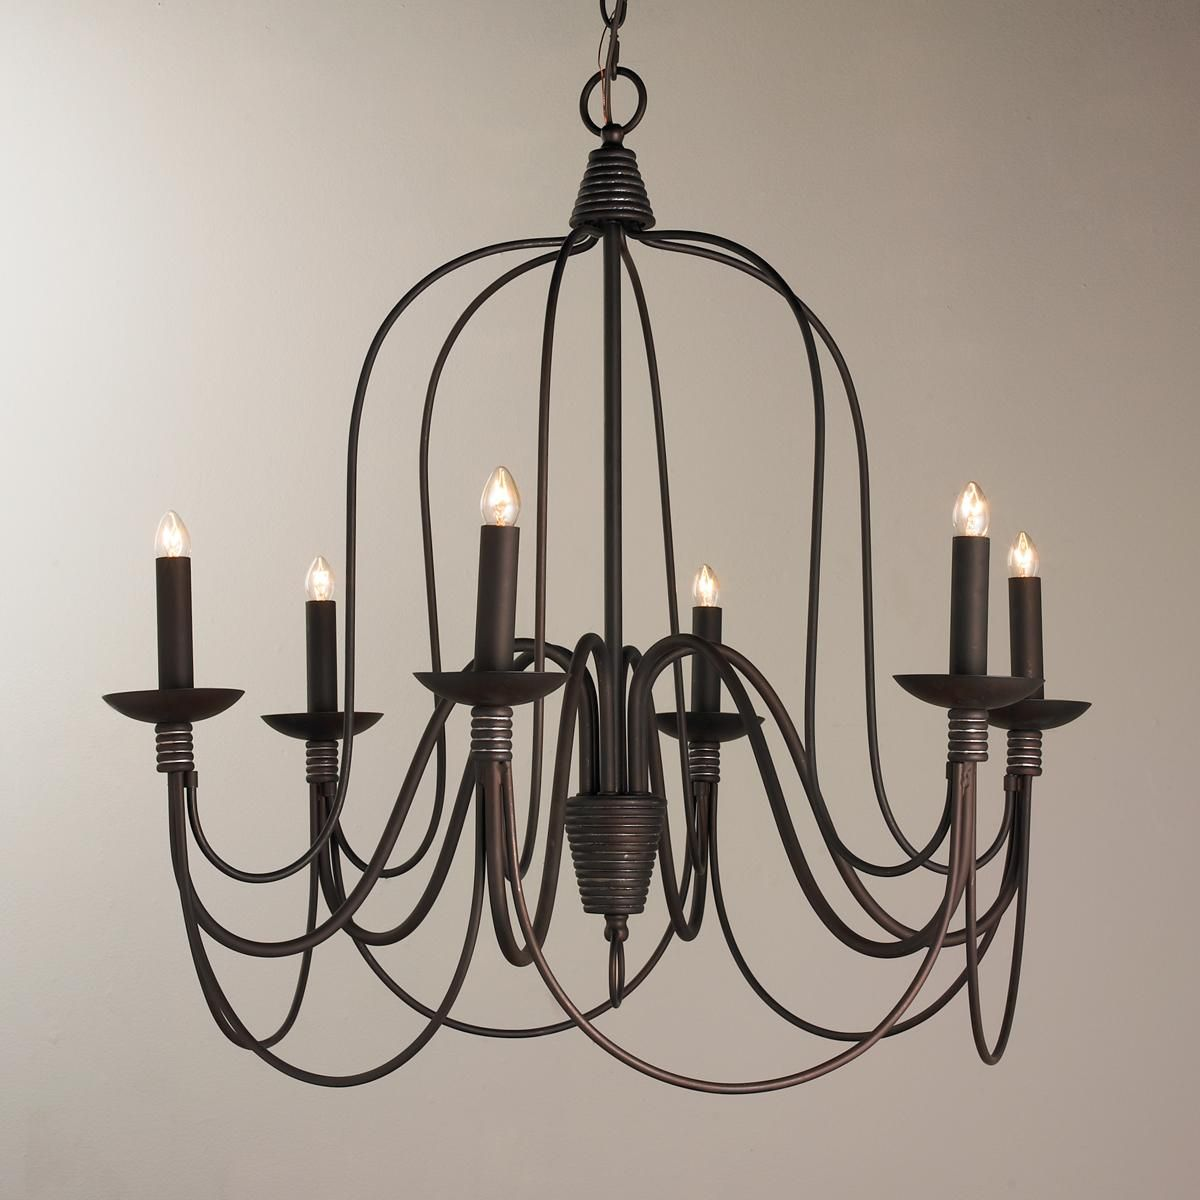 Bronze swag chandelier 6 light chandelier shades oil rubbed bronze and french countryside - Can light chandelier ...